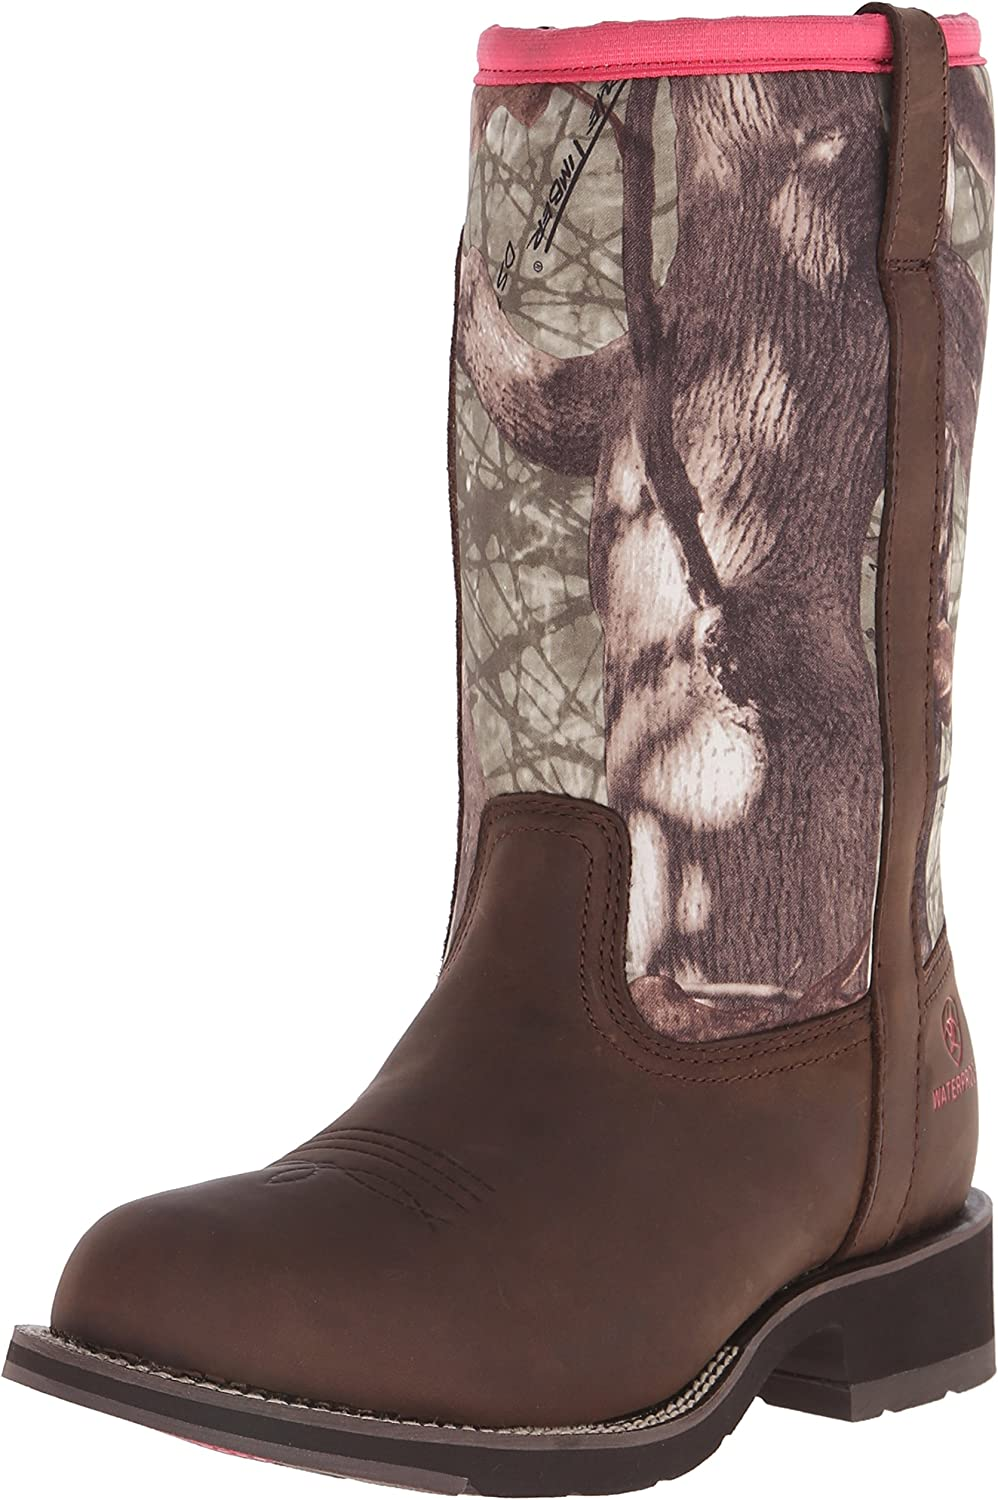 ARIAT Women's Fatbaby All Weather Western Cowboy Boot, Palm